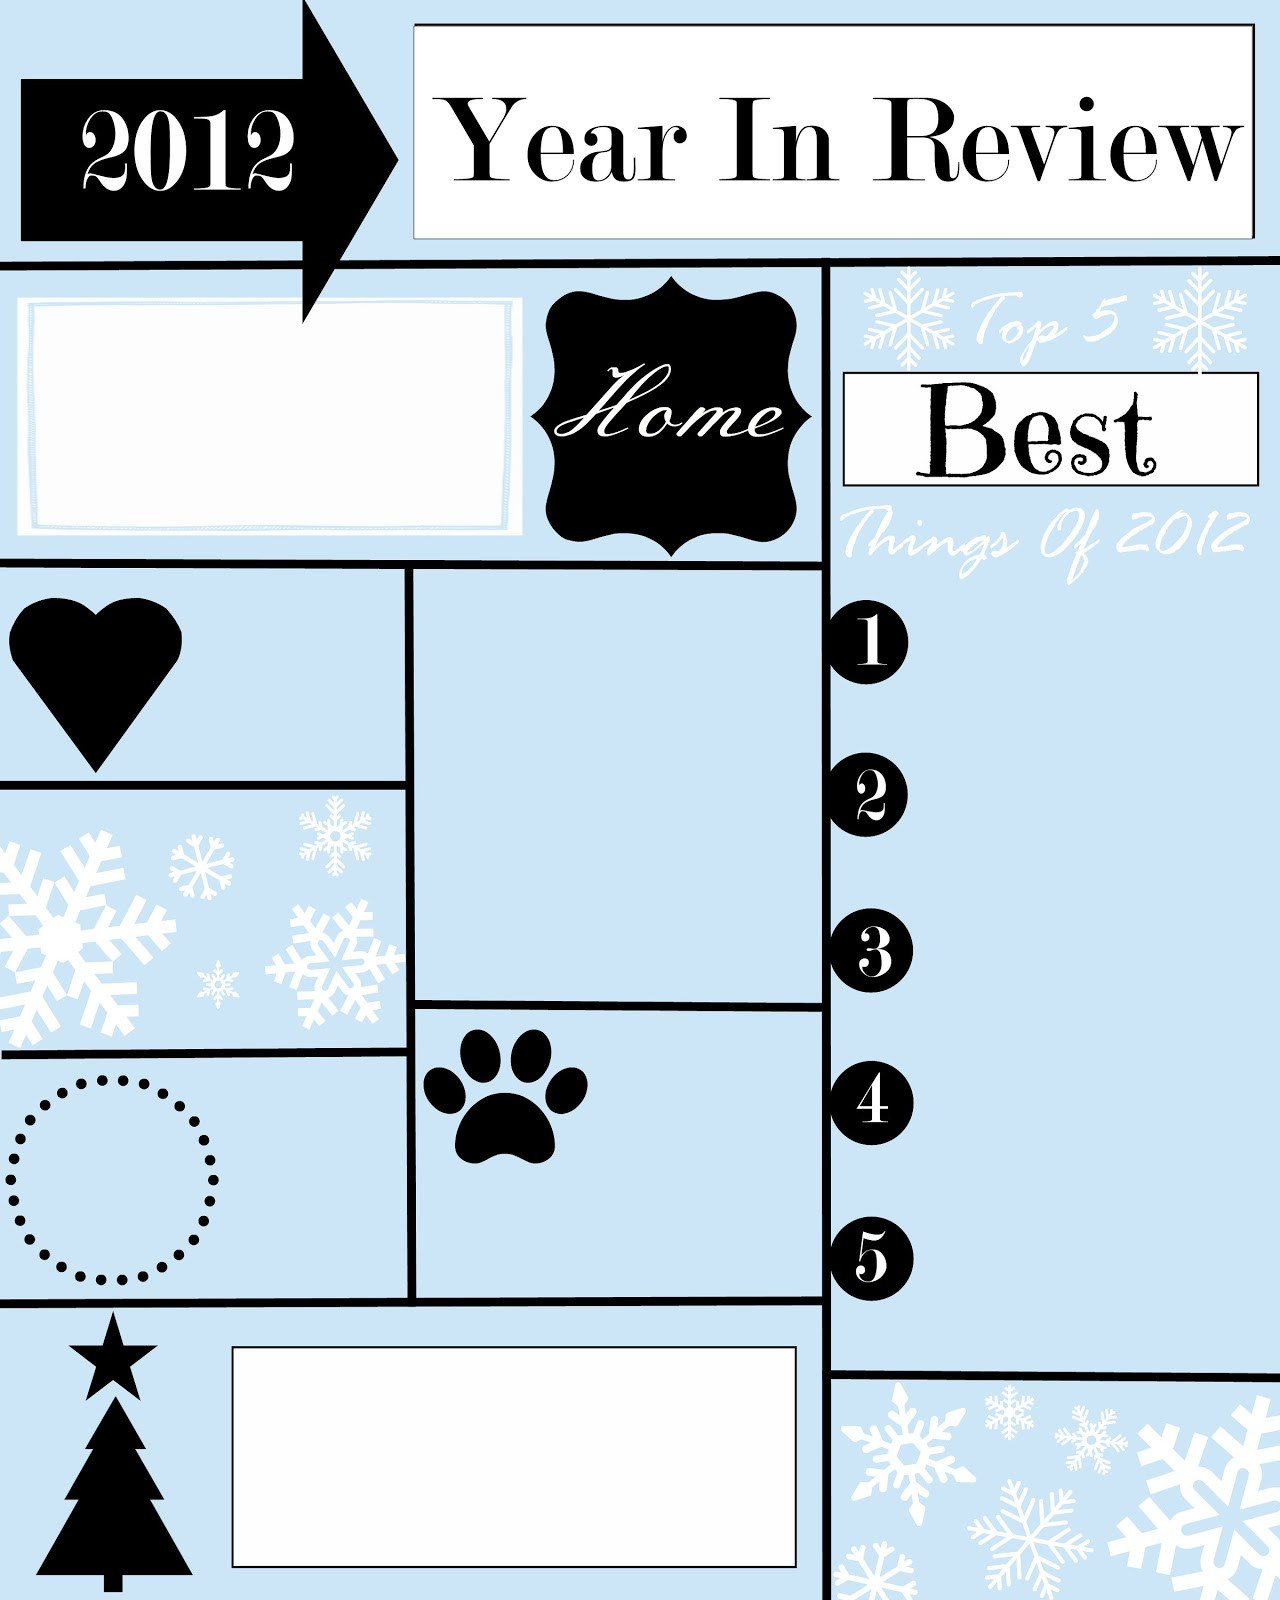 Creative Christmas Letter Ideas  A YEAR IN REVIEW CHRISTMAS LETTER AND TEMPLATE StoneGable